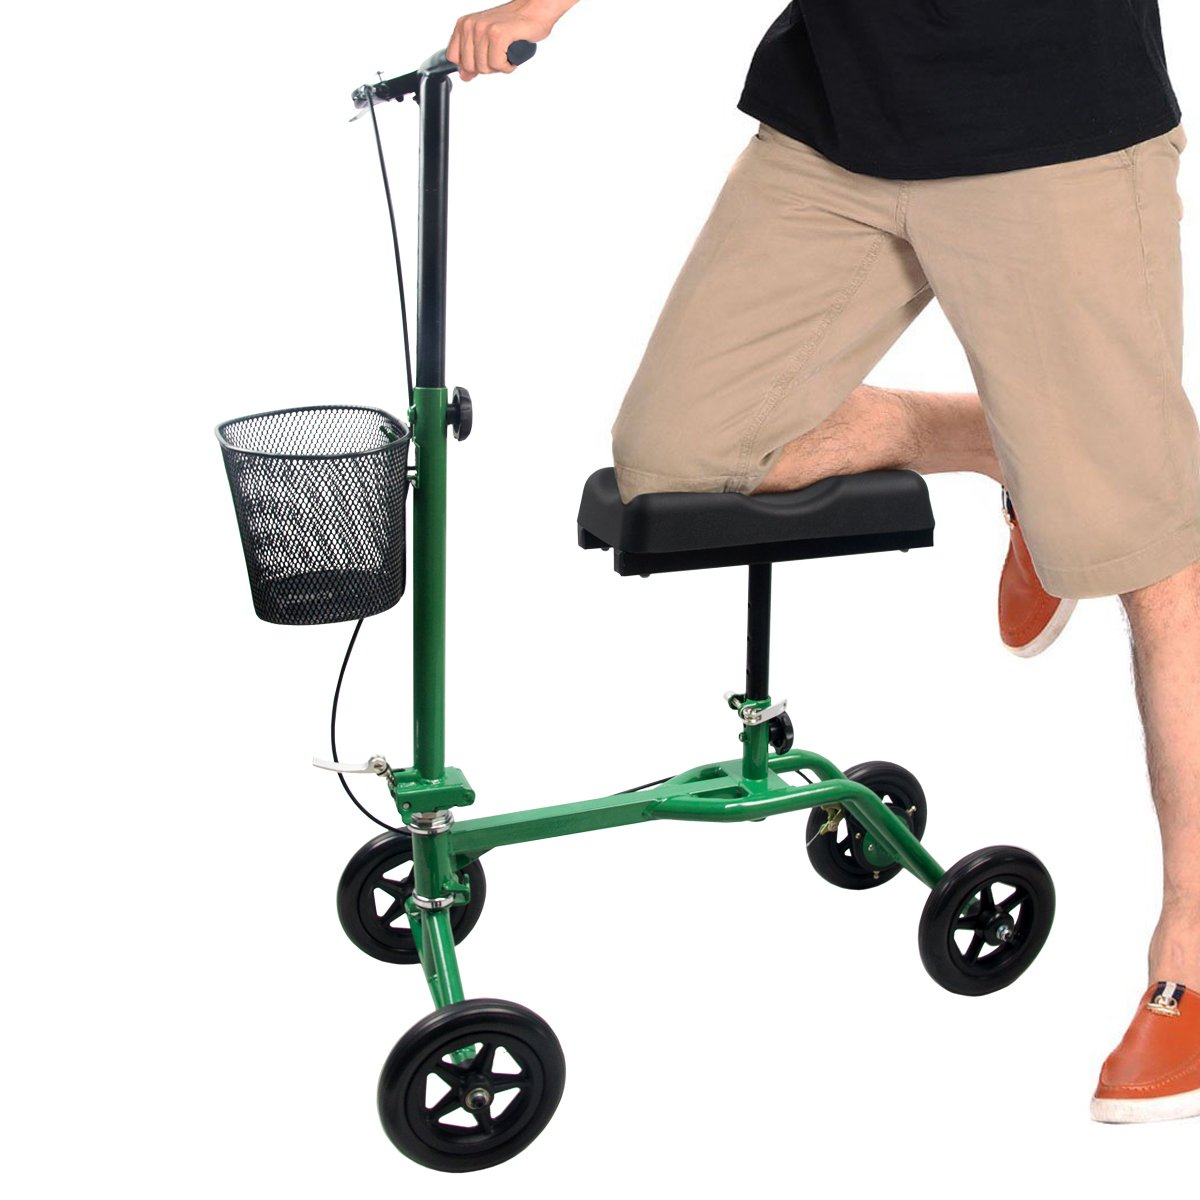 H&A Steerable Knee Walker Scooter with Basket and Leg Cast Protector, Medical Walker Scooter Alternative to Crutches for Broken Leg and Foot Injuries (Green)